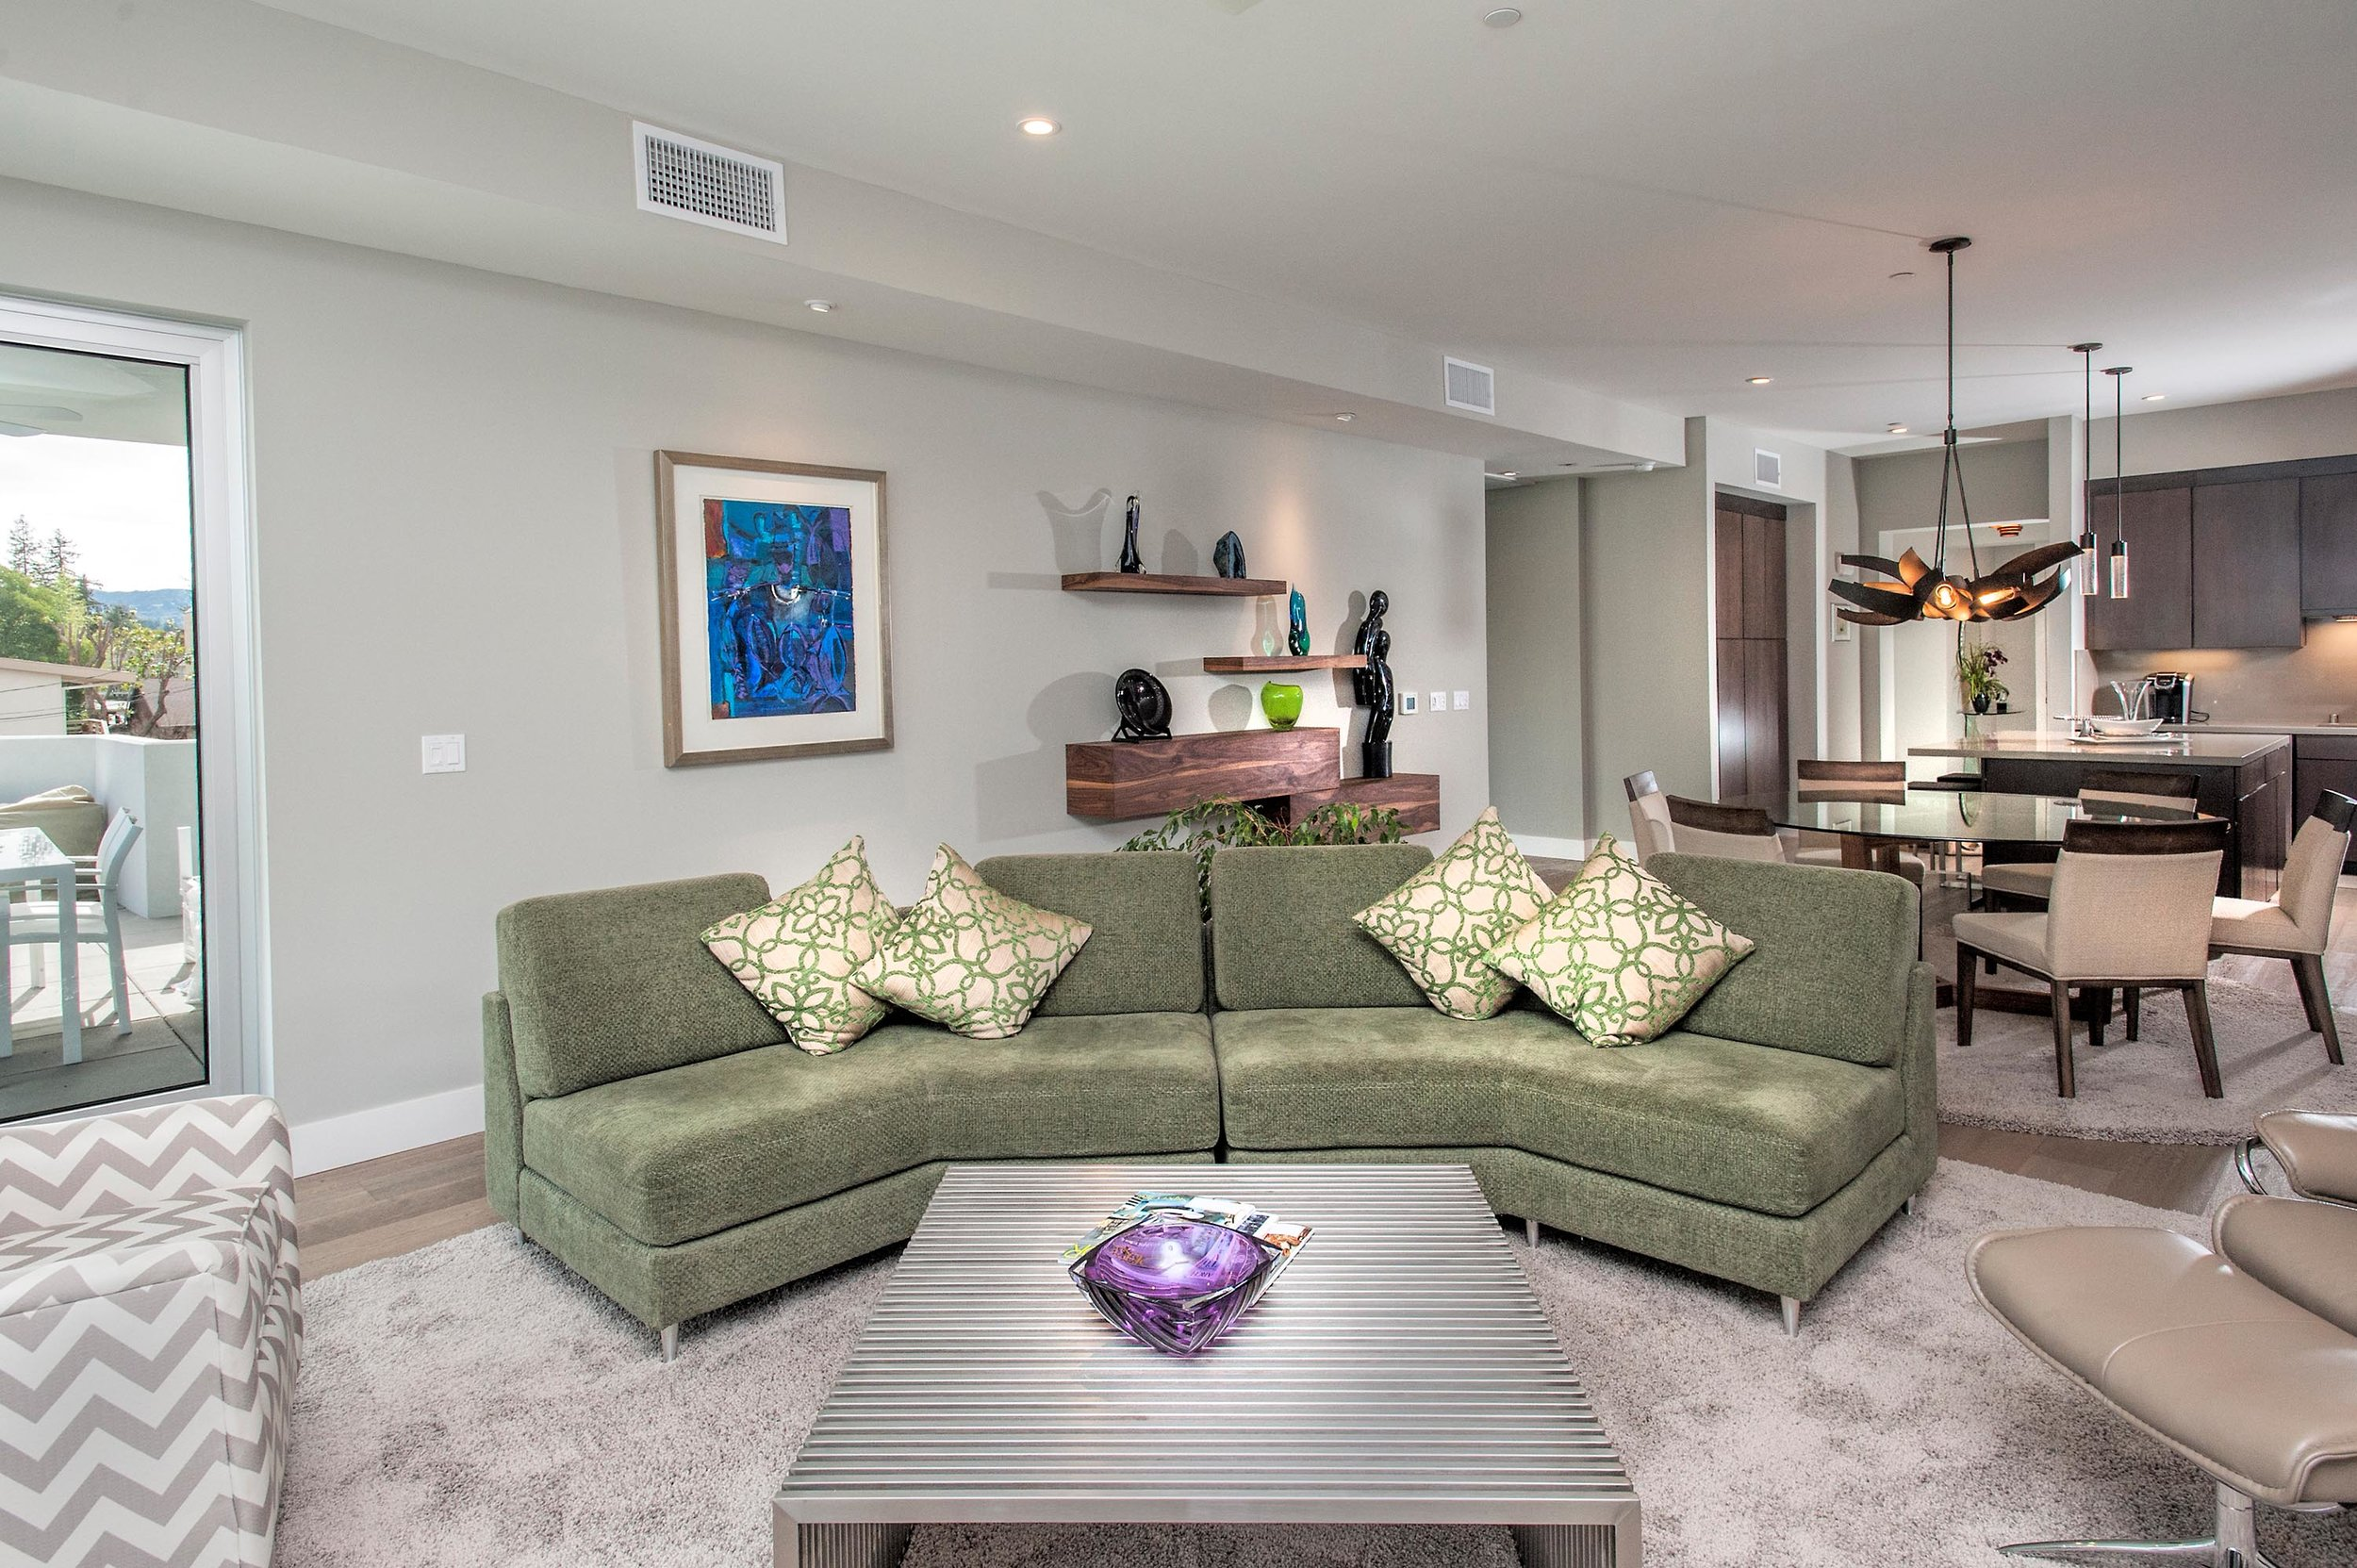 Living room with floor mattress and green sofa